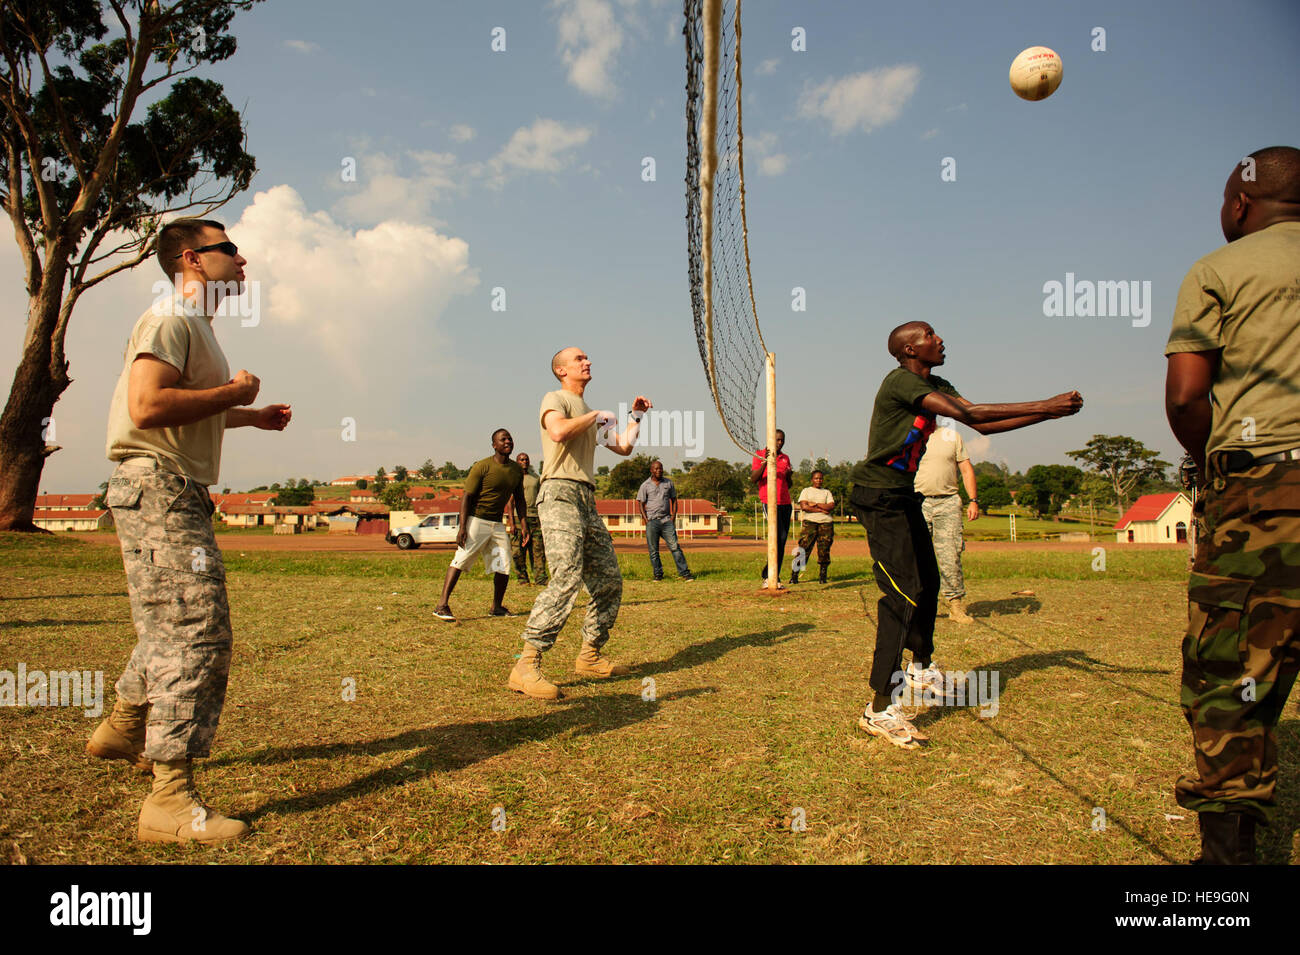 Uganda People's Defense Force officers attending a military decision-making process and information operations - Stock Image